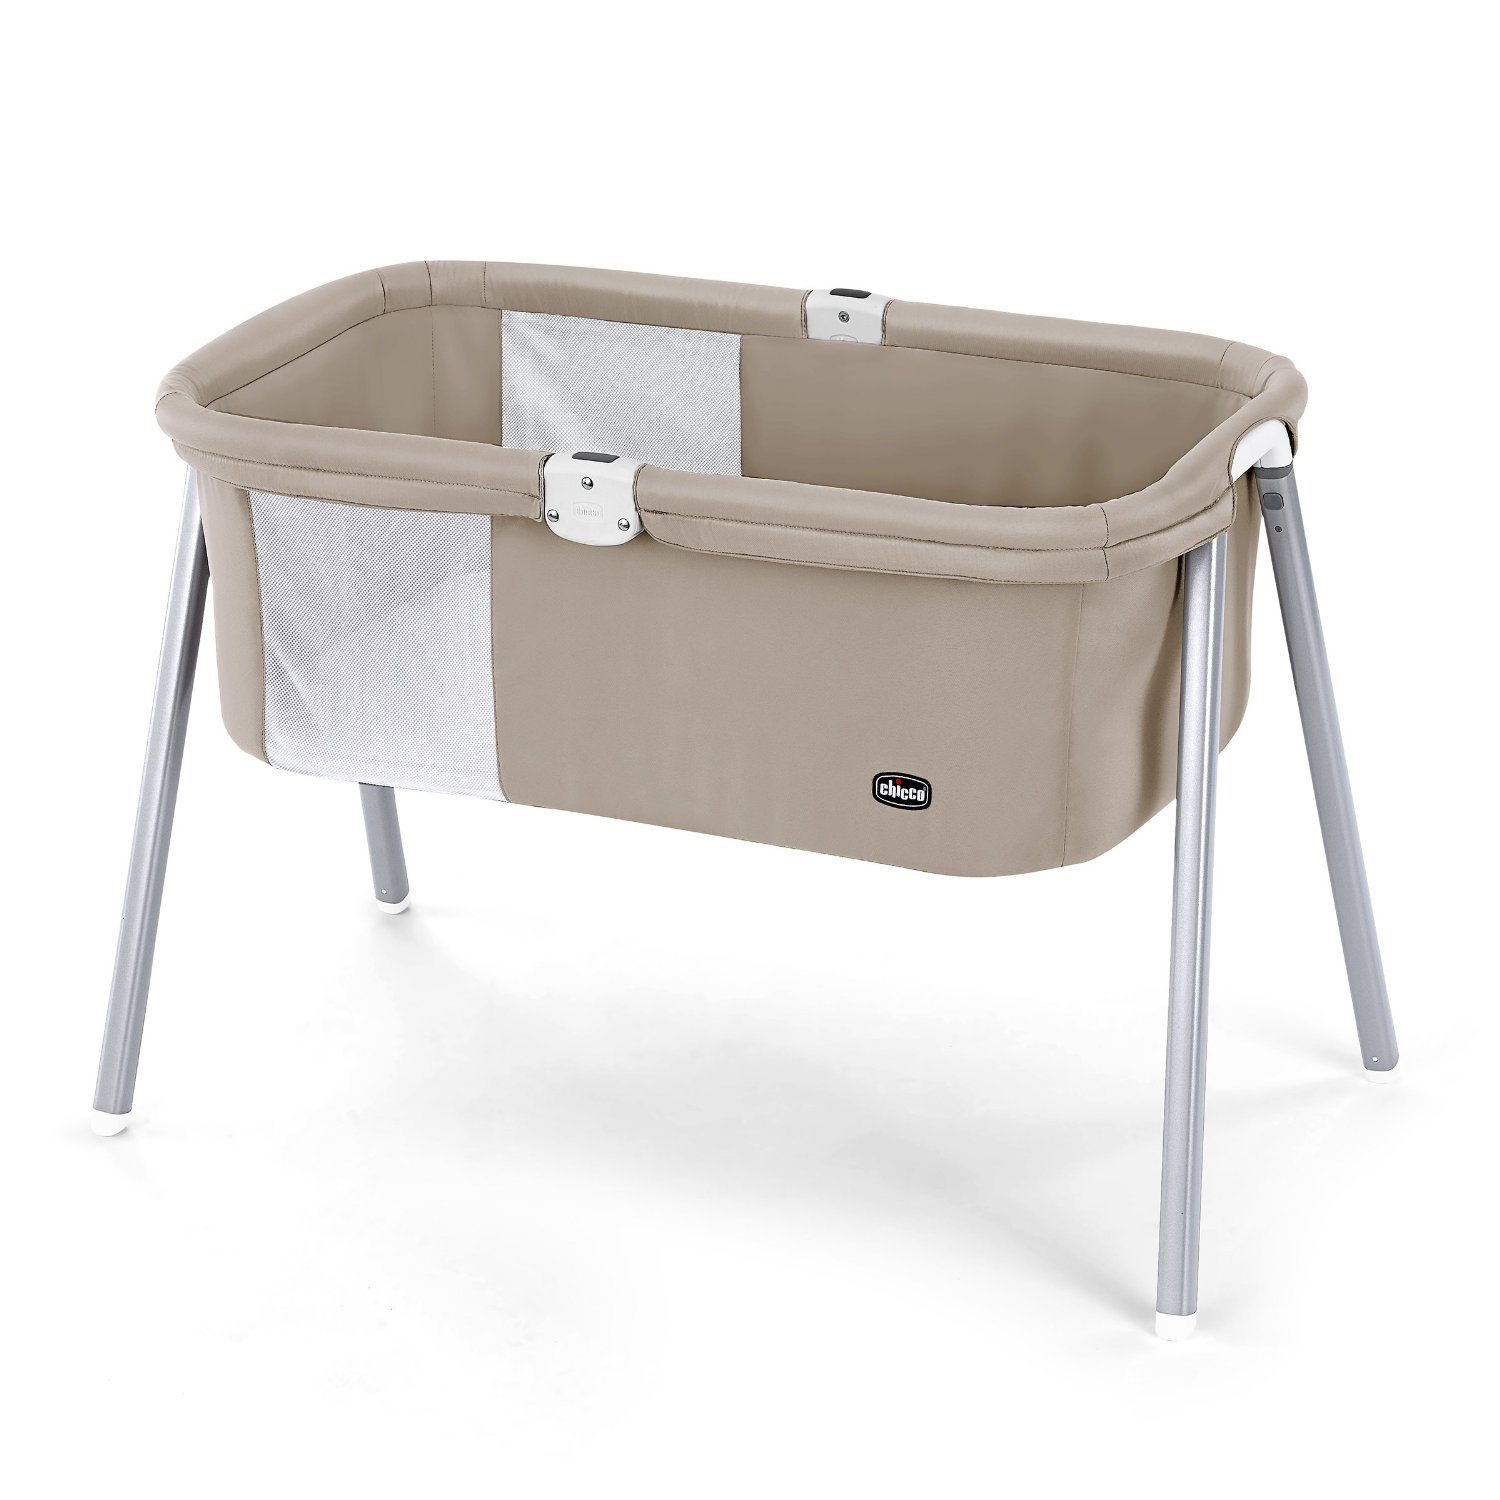 Chicco bassinet nantucket baby Portable bassinet